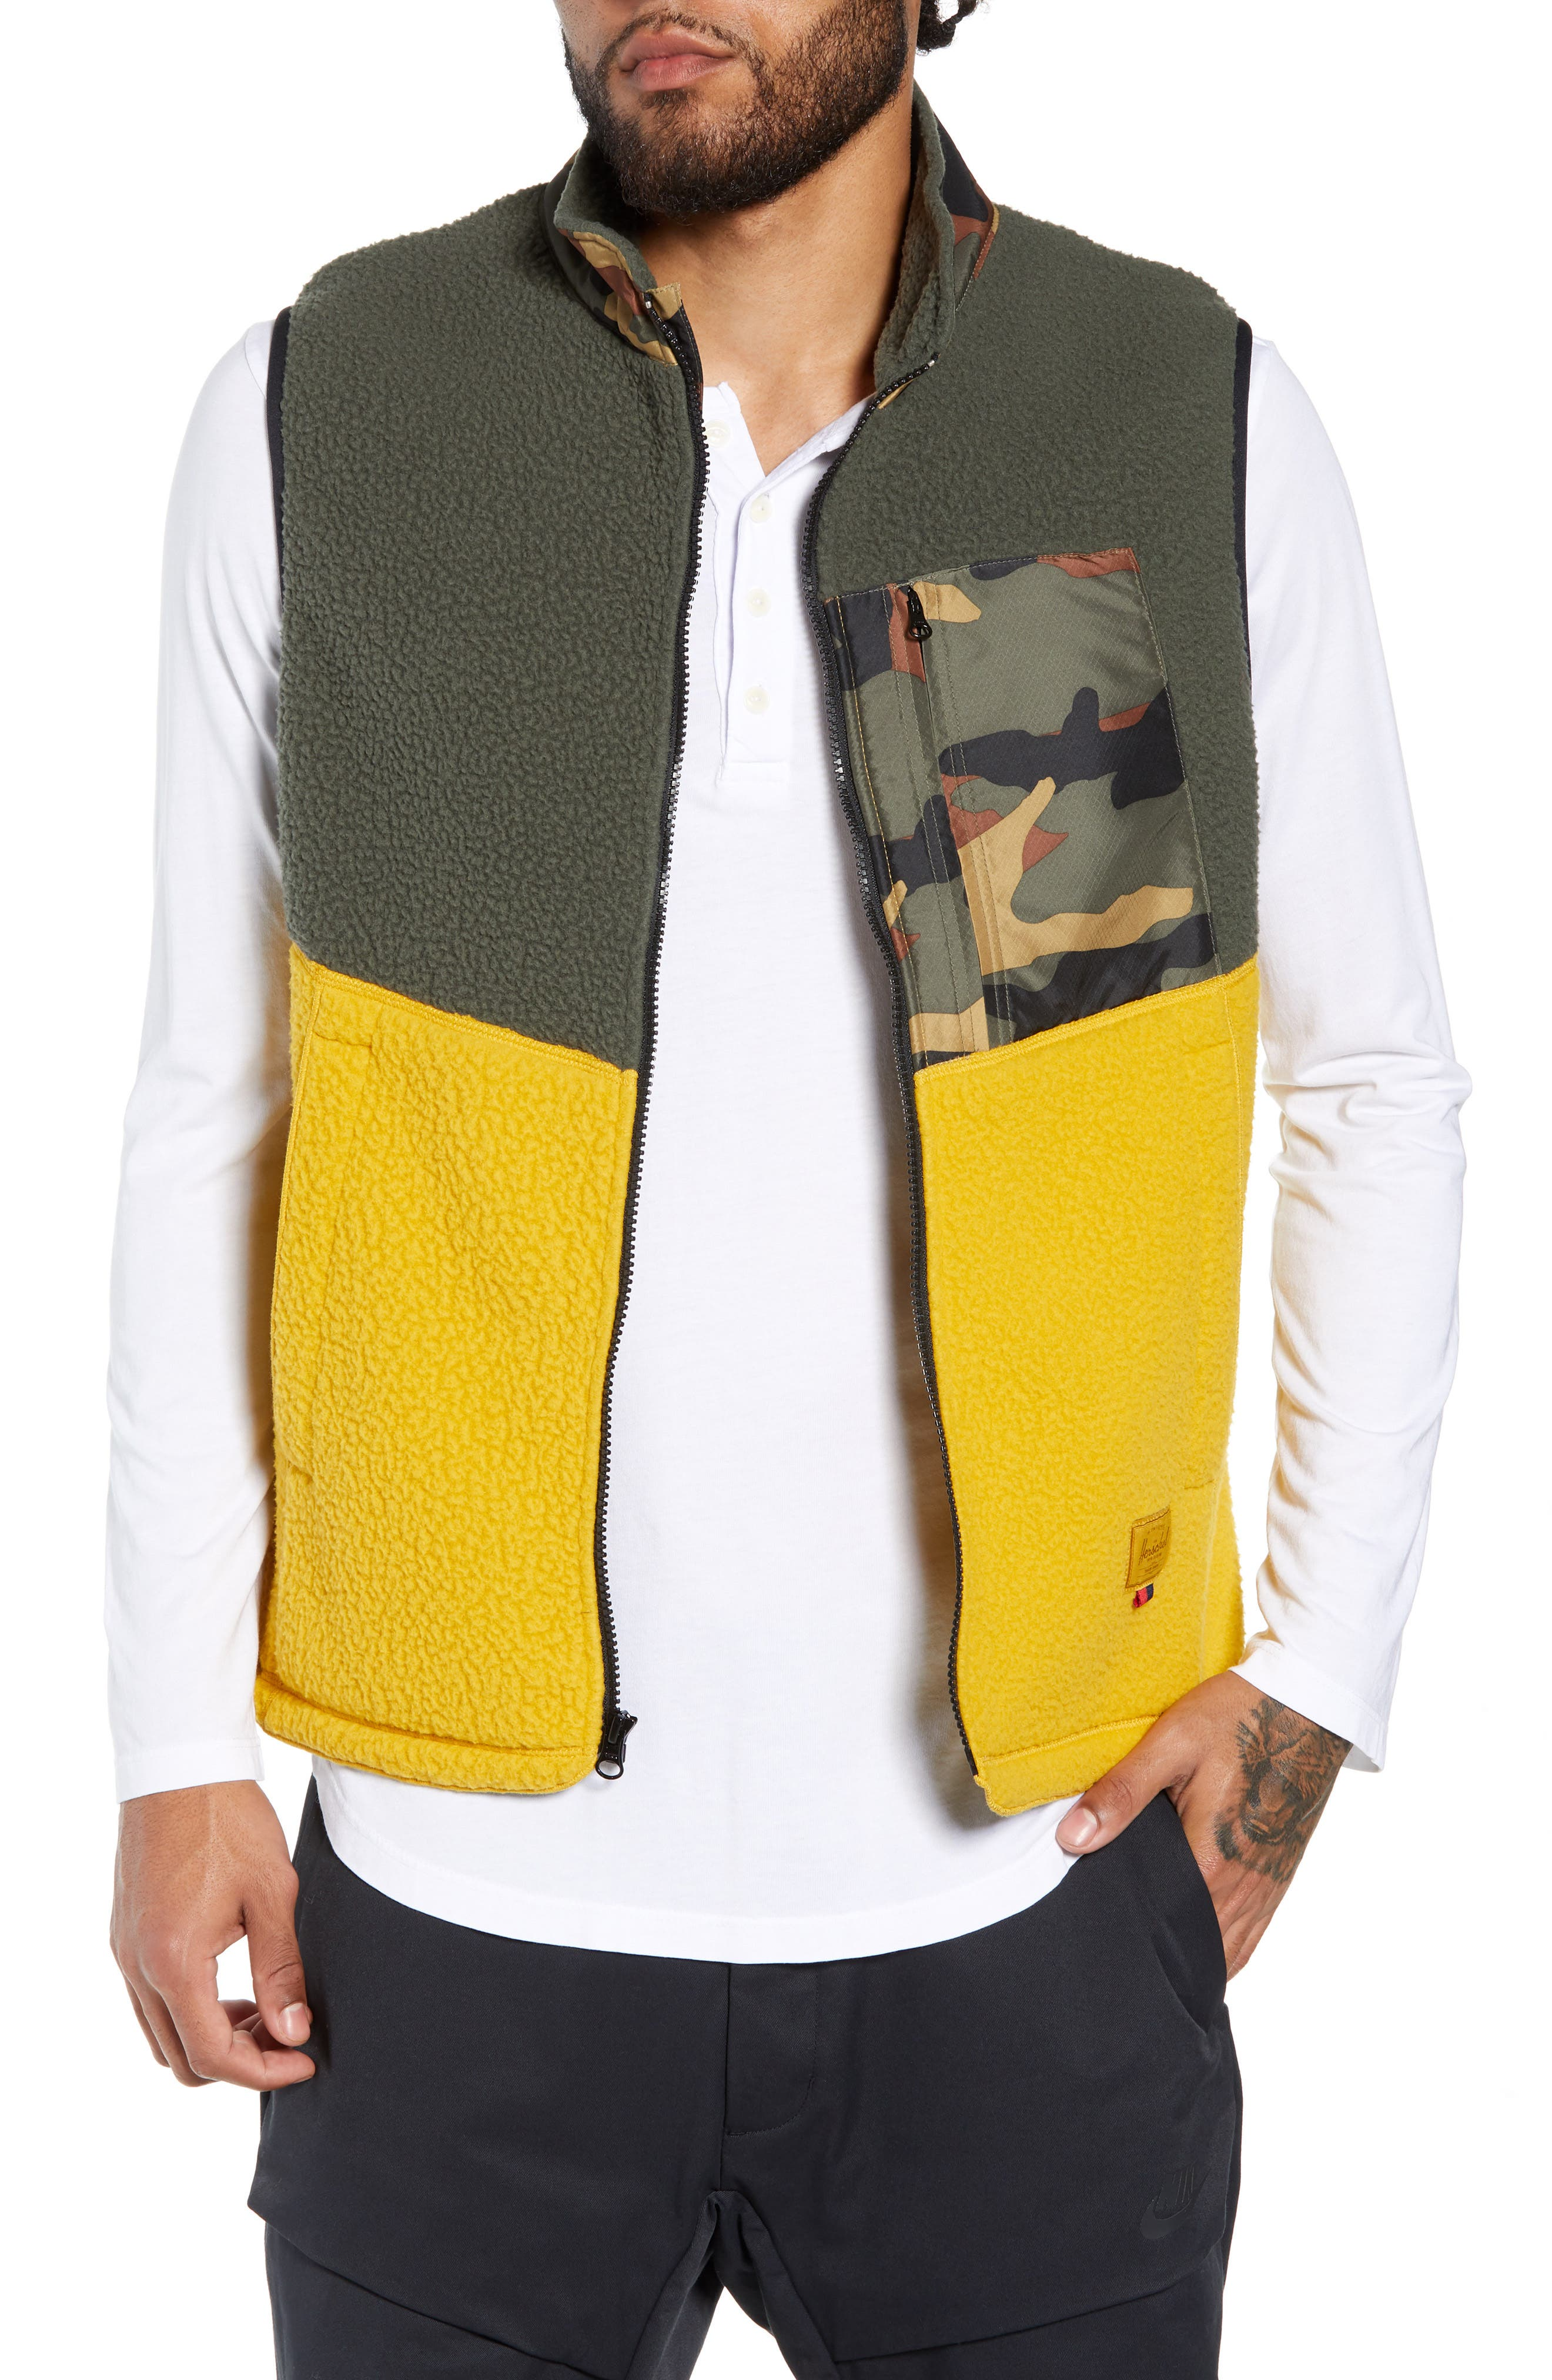 f2da1aebc4 Men s Vests - Country   Outdoors Clothing